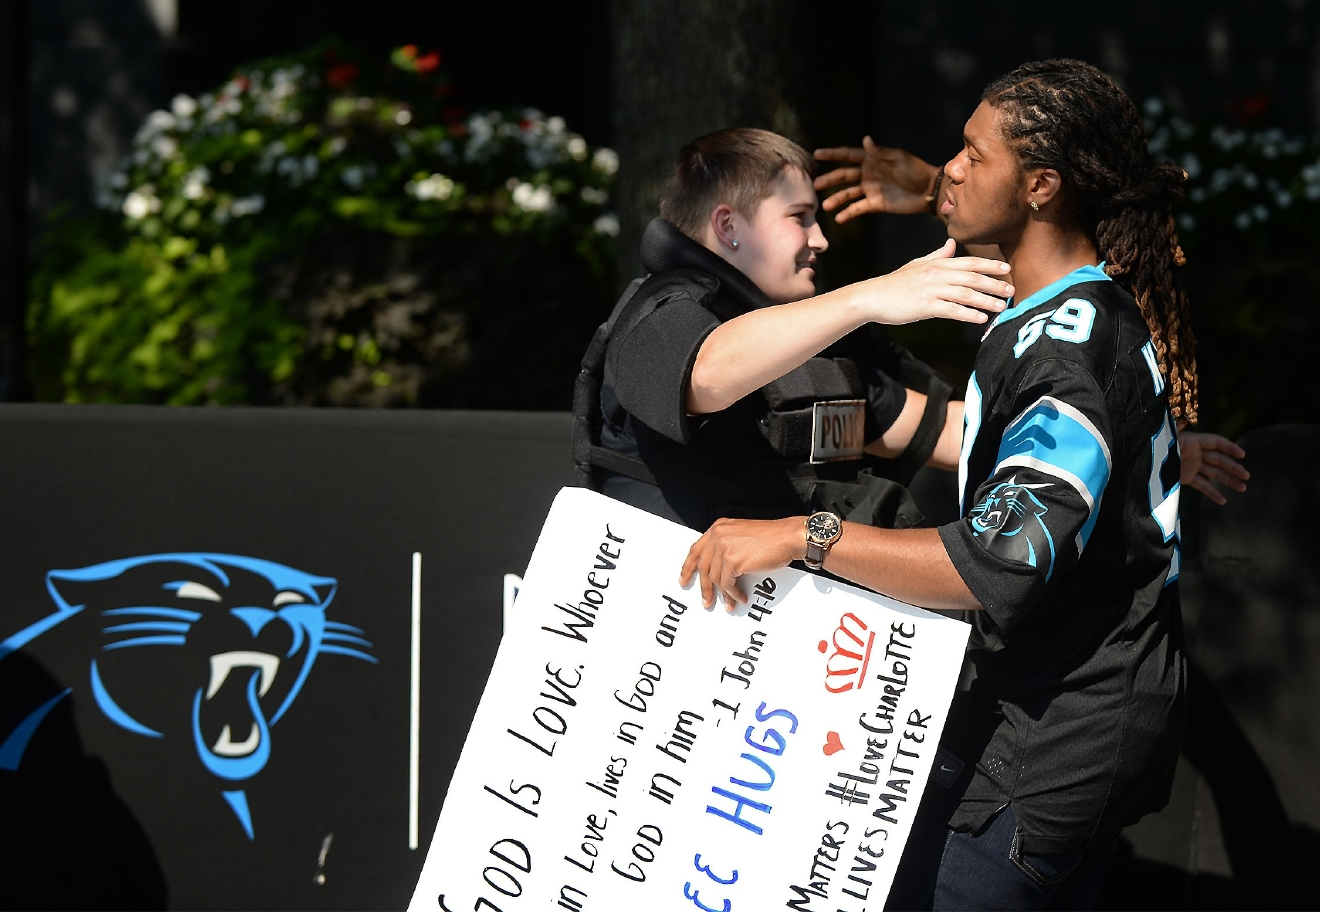 JaGerran Knight, right, reaches out to hug a Charlotte-Mecklenburg police officer at Bank of America Stadium, where people were protesting, in Charlotte, N.C., Sunday, Sept. 25, 2016. The Carolina Panthers hosted an NFL football game with the Minnesota Vikings at the stadium. When the national anthem was played, the protesters all dropped to one knee as many NFL players have been doing for weeks to call attention to issues, including police shootings. (Diedra Laird/The Charlotte Observer via AP)